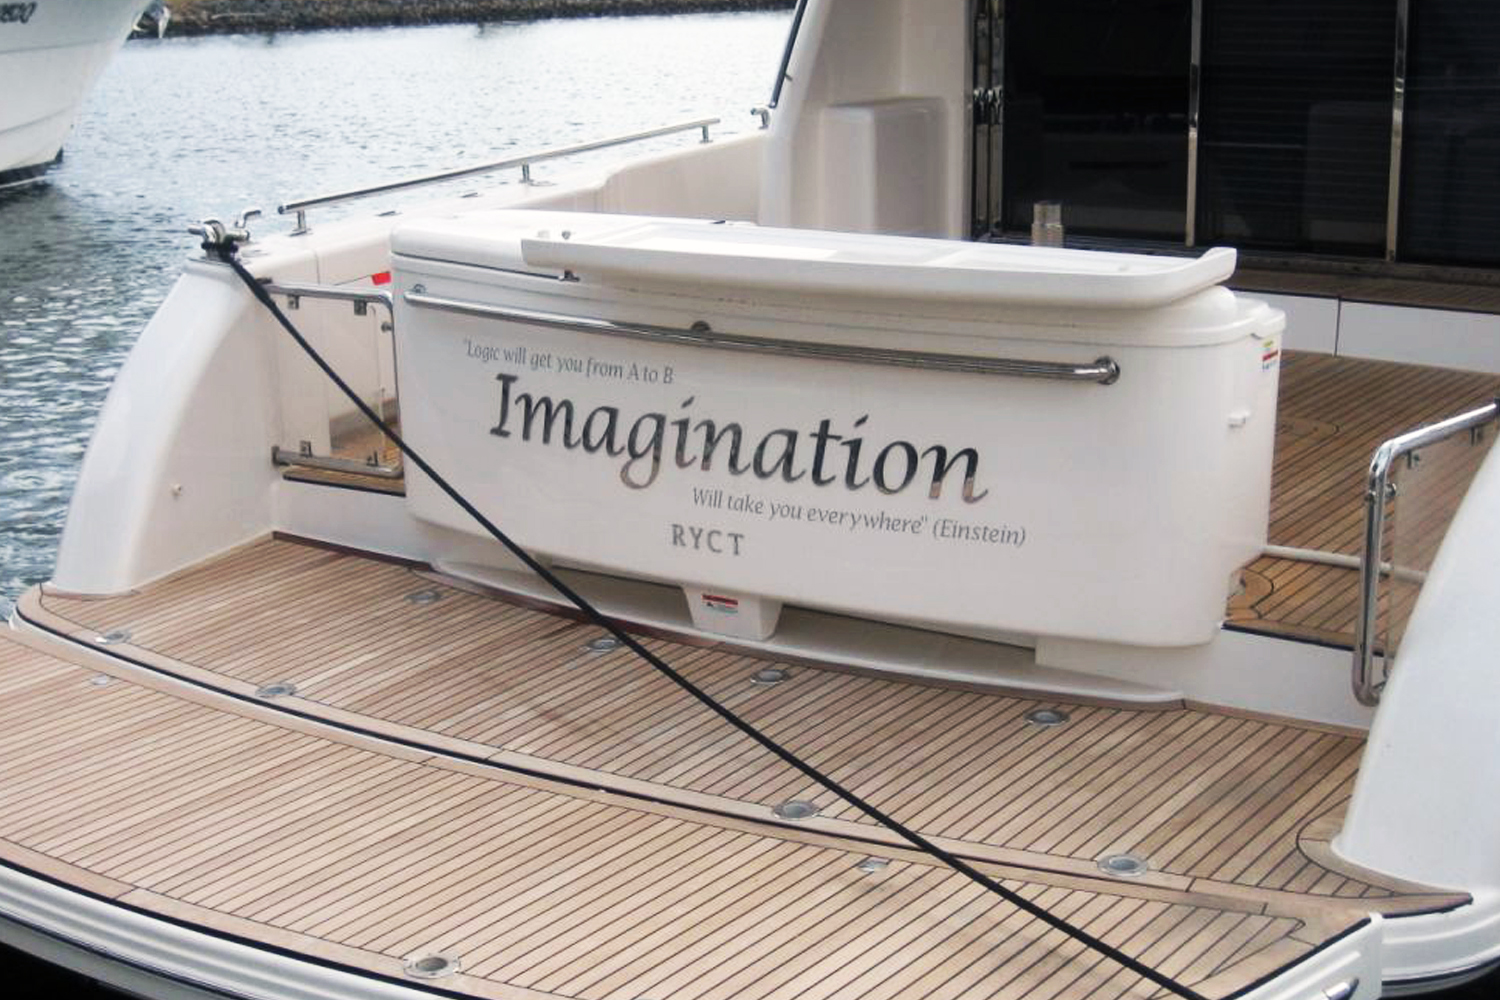 Stainless Boat Name-Imagination